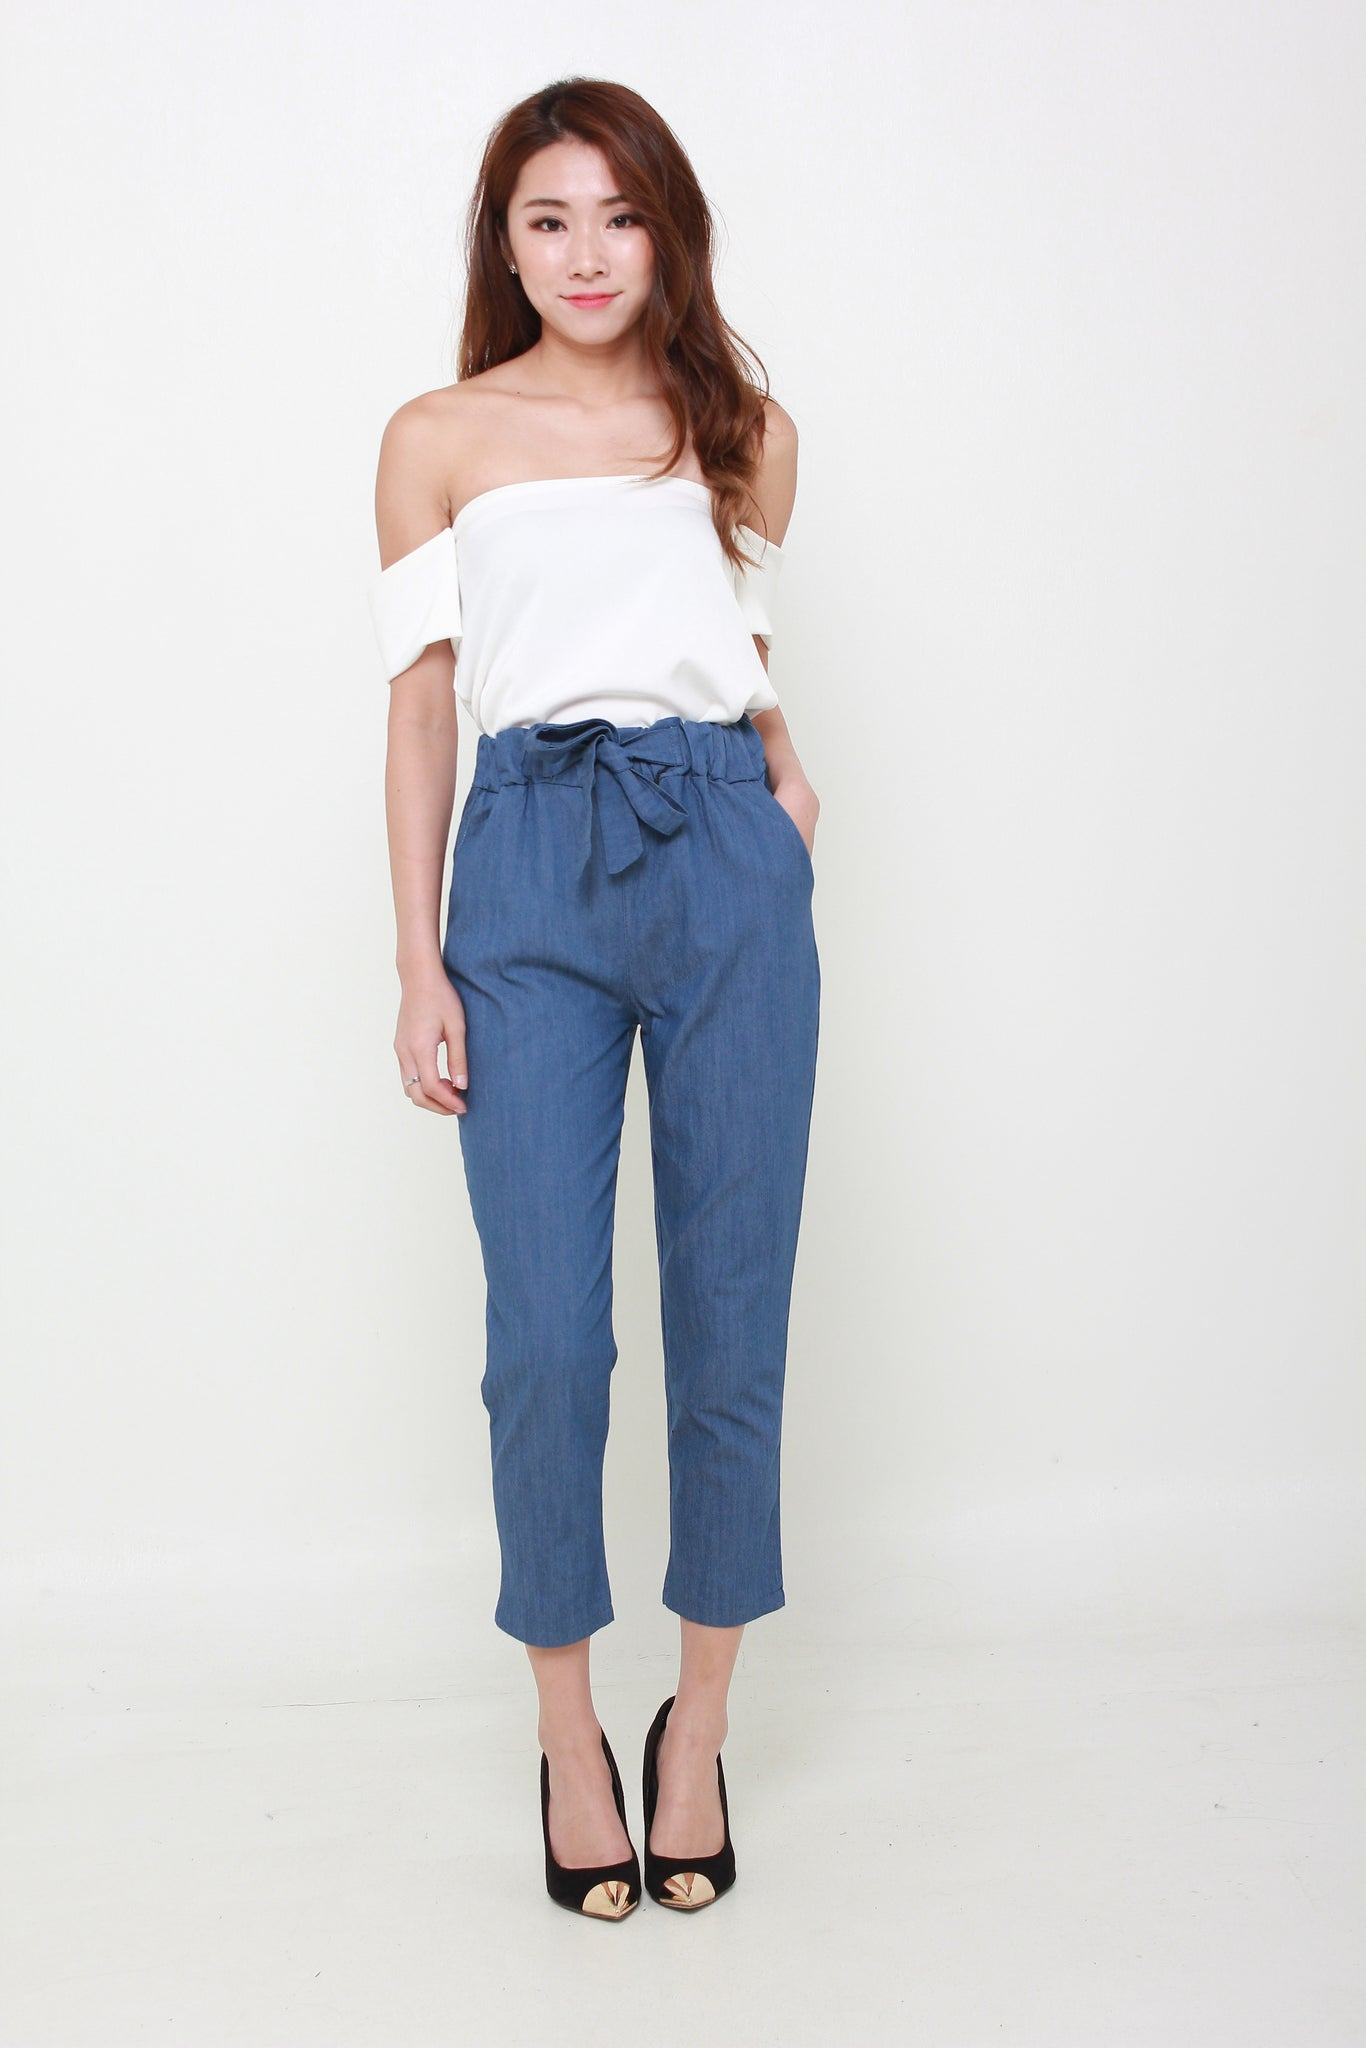 Ribbon Cropped Ankle Length Pants In Denim Blue